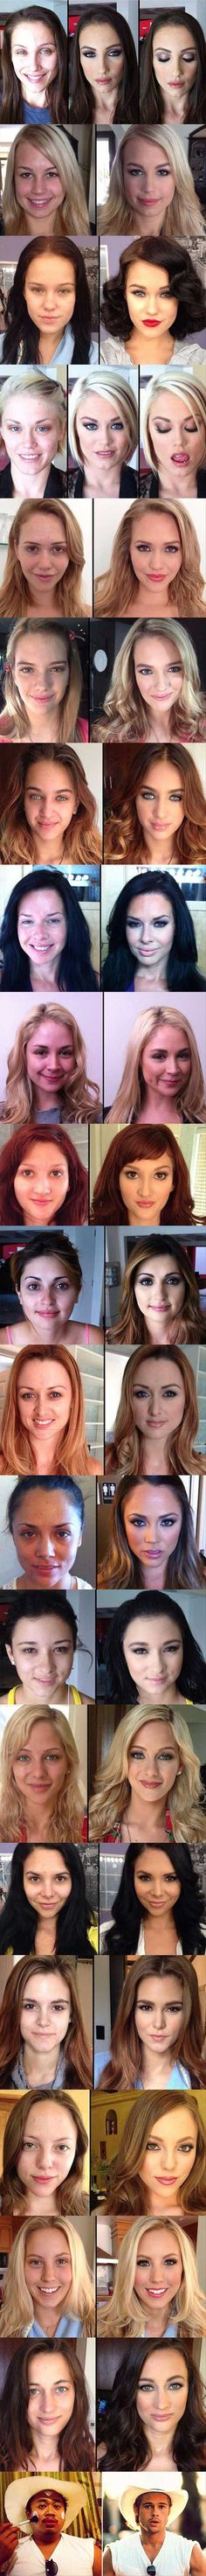 Behold The Power Of Makeup  21Pics